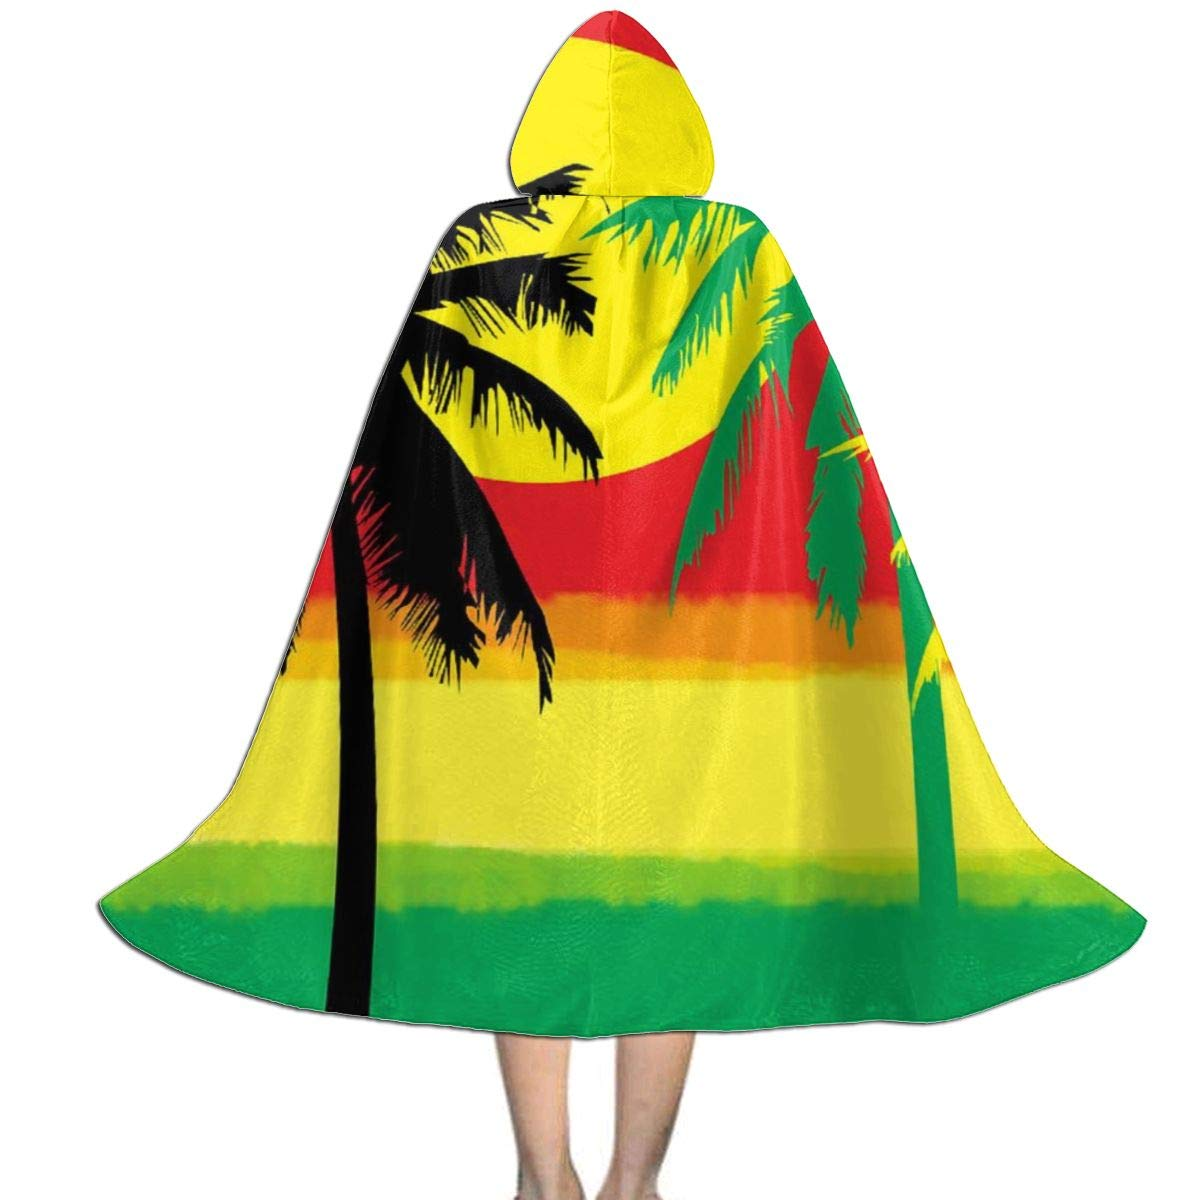 Grill Tree Island Sunset Full Length Hooded Cloak Halloween Cosplay Cloak for Halloween Christmas Stage Costumes Masquerade S by MAYUES